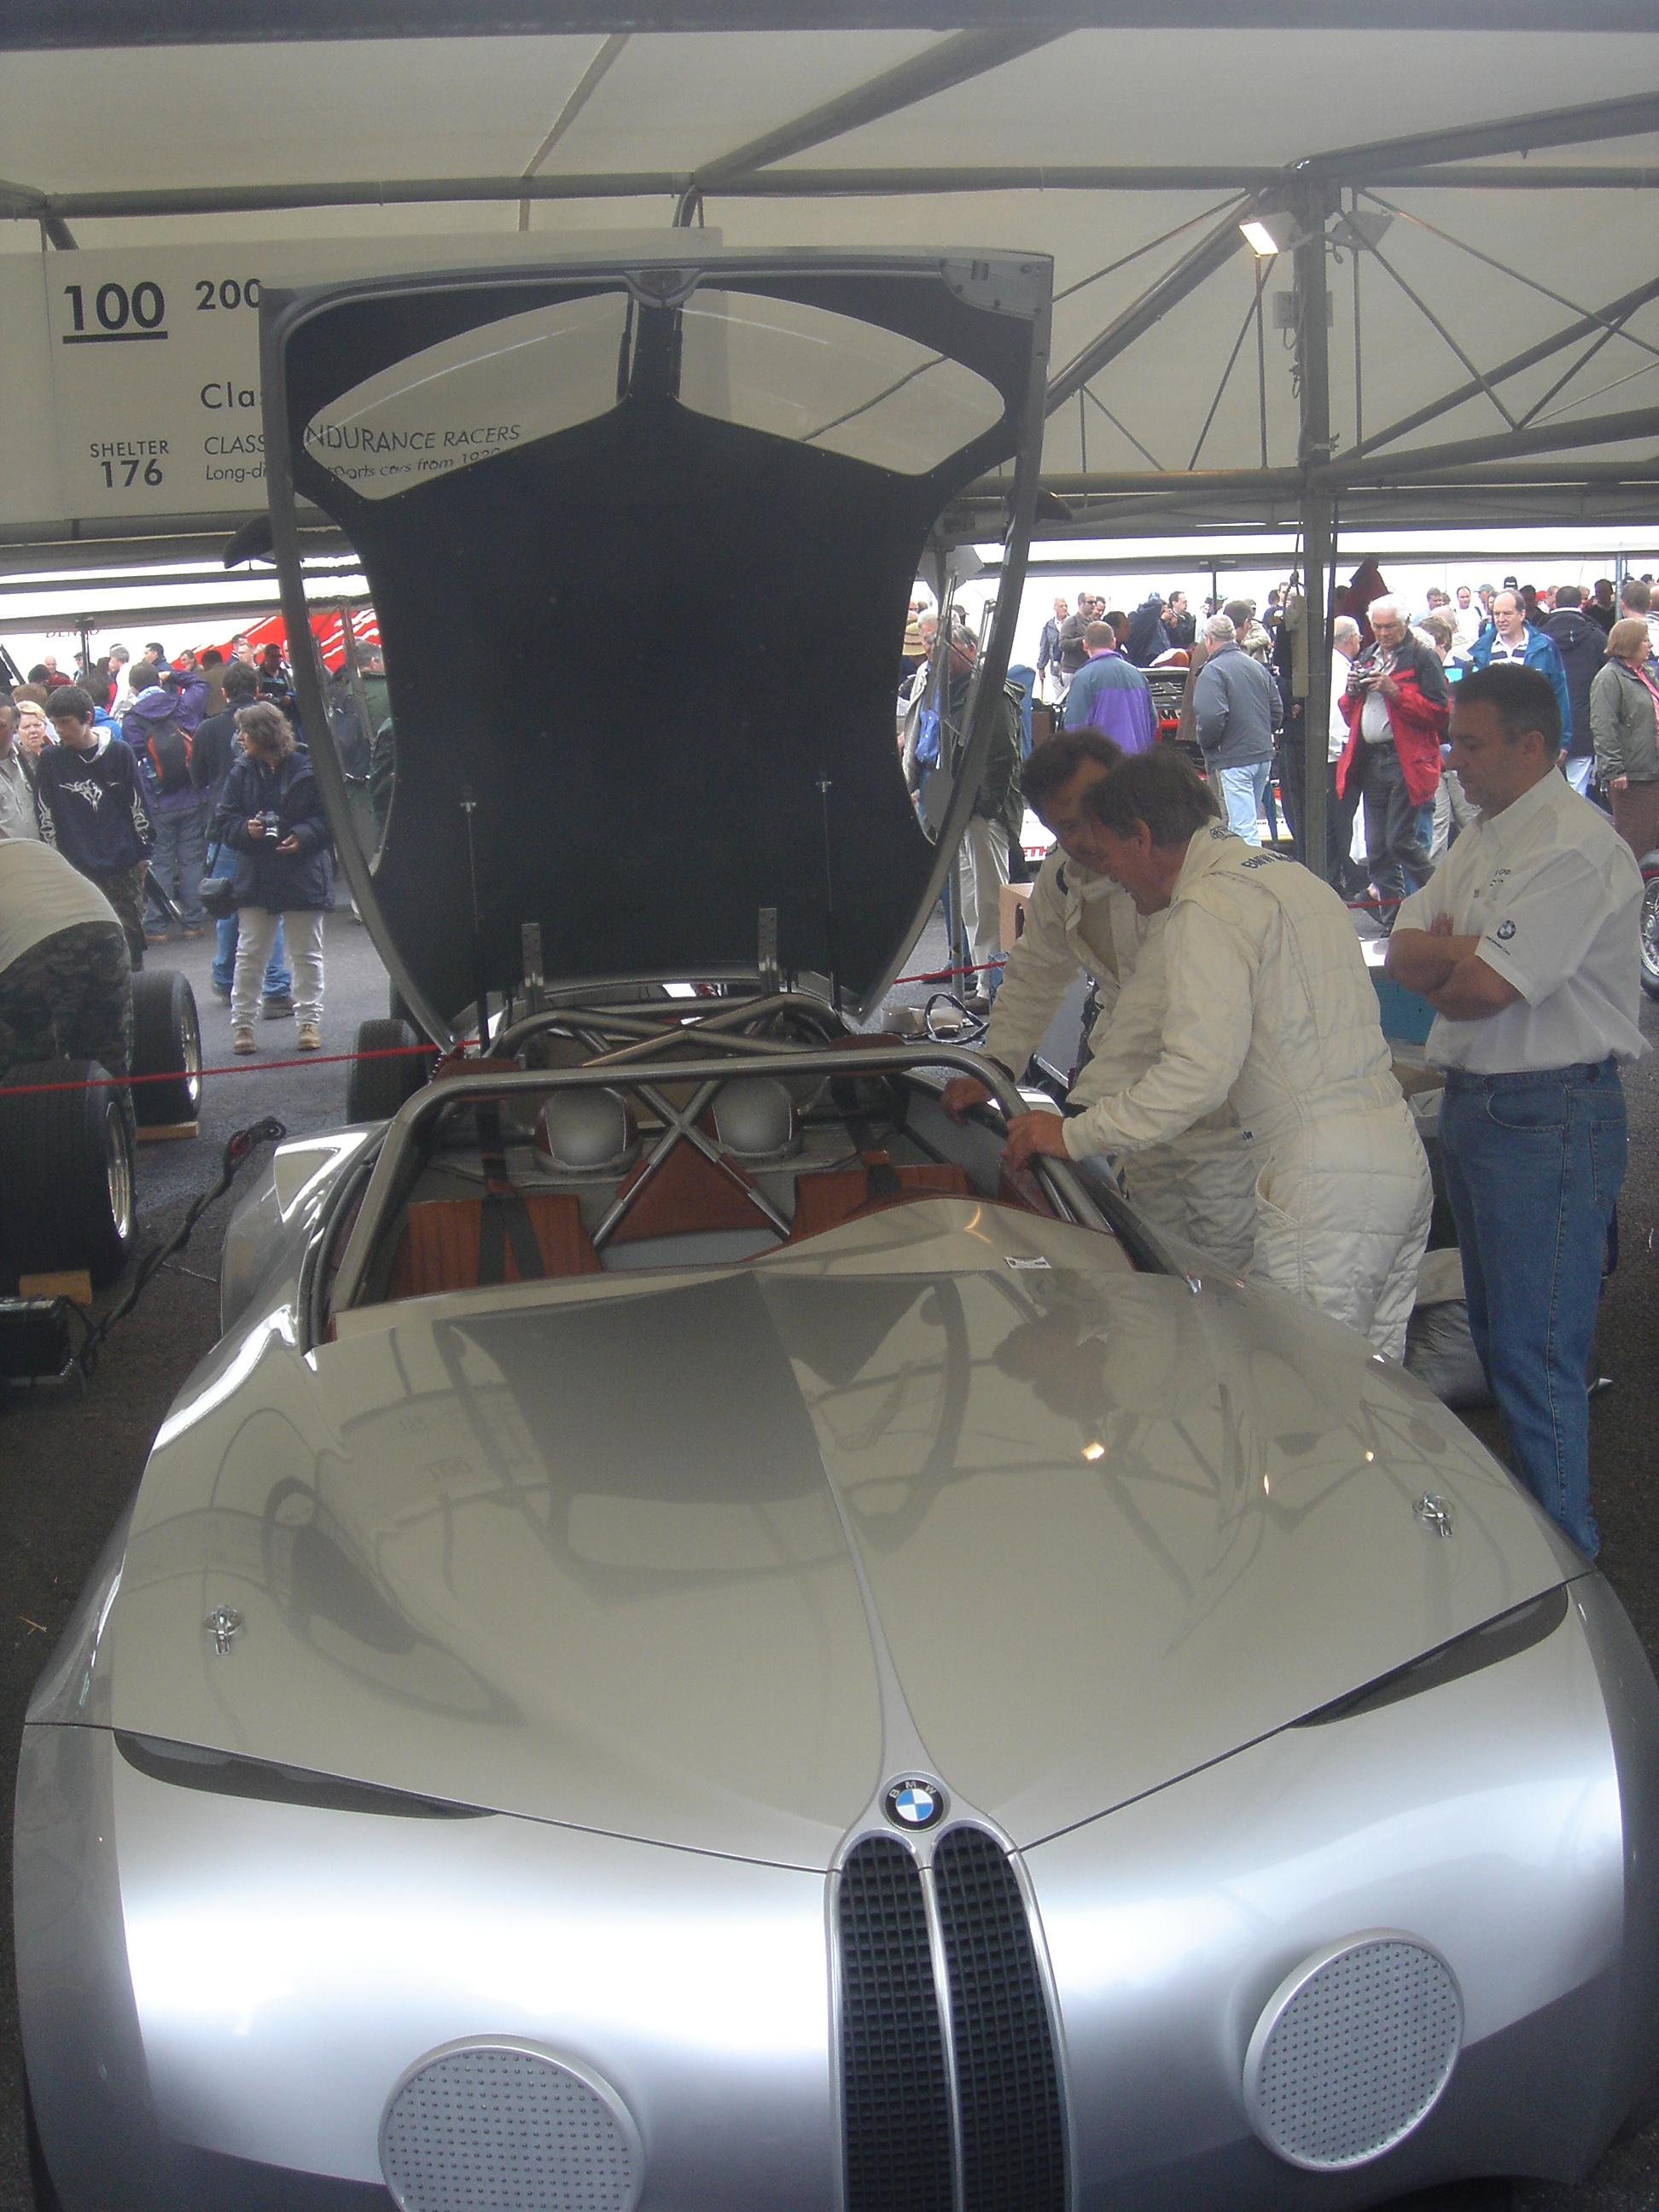 File:Goodwood2007-016 BMW Mille Miglia 2006 Concept Car.jpg ...